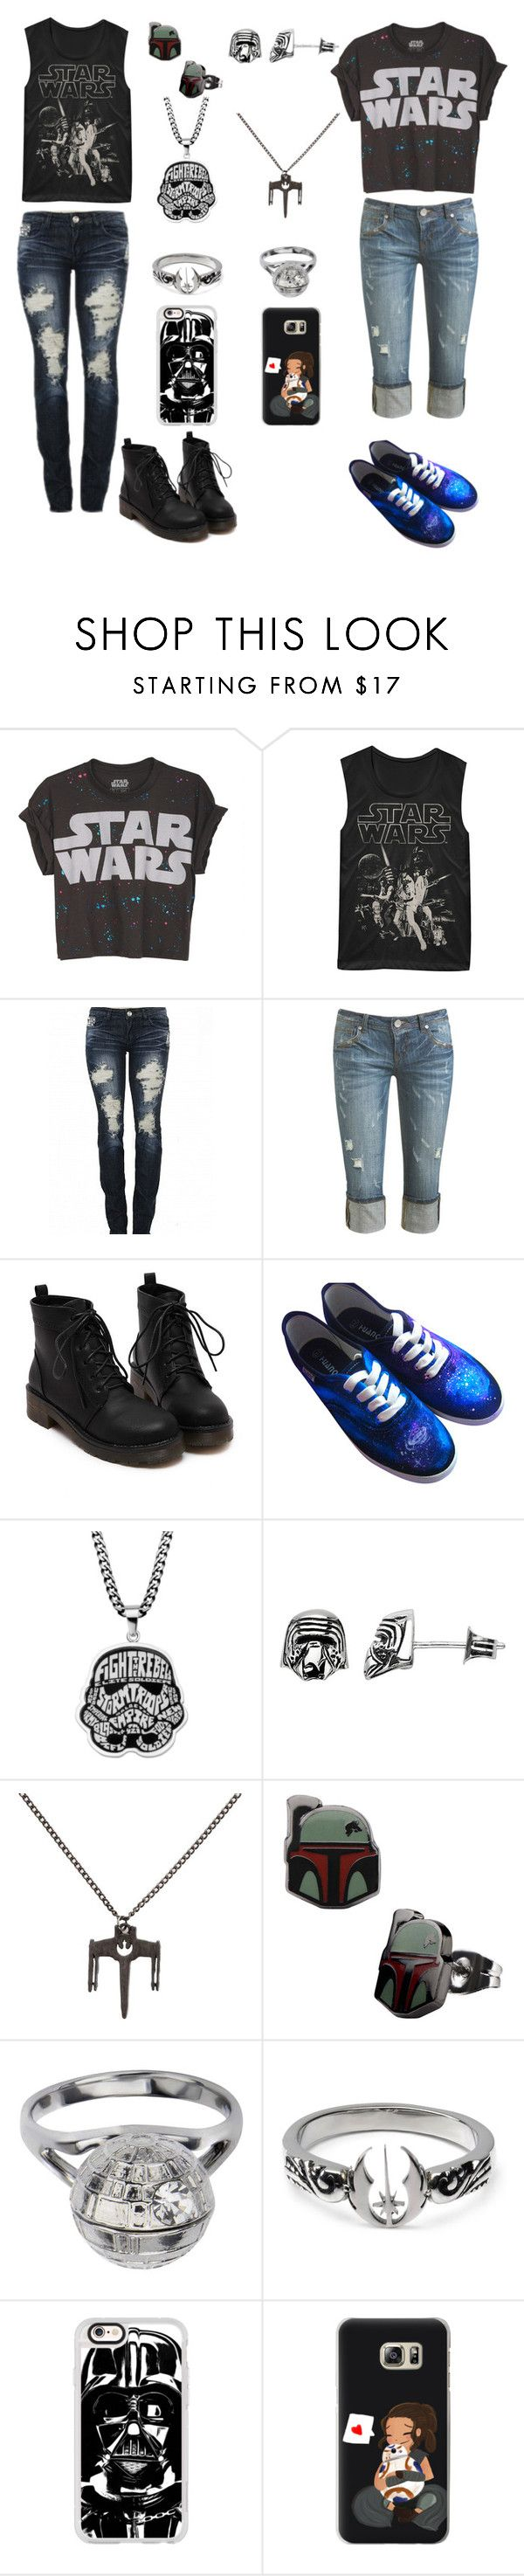 """May the 4th be with you (yes i went all out star-wars today)"" by awesomeandsuperanna ❤ liked on Polyvore featuring Fifth Sun, DK, Wet Seal, Chicnova Fashion and Casetify"